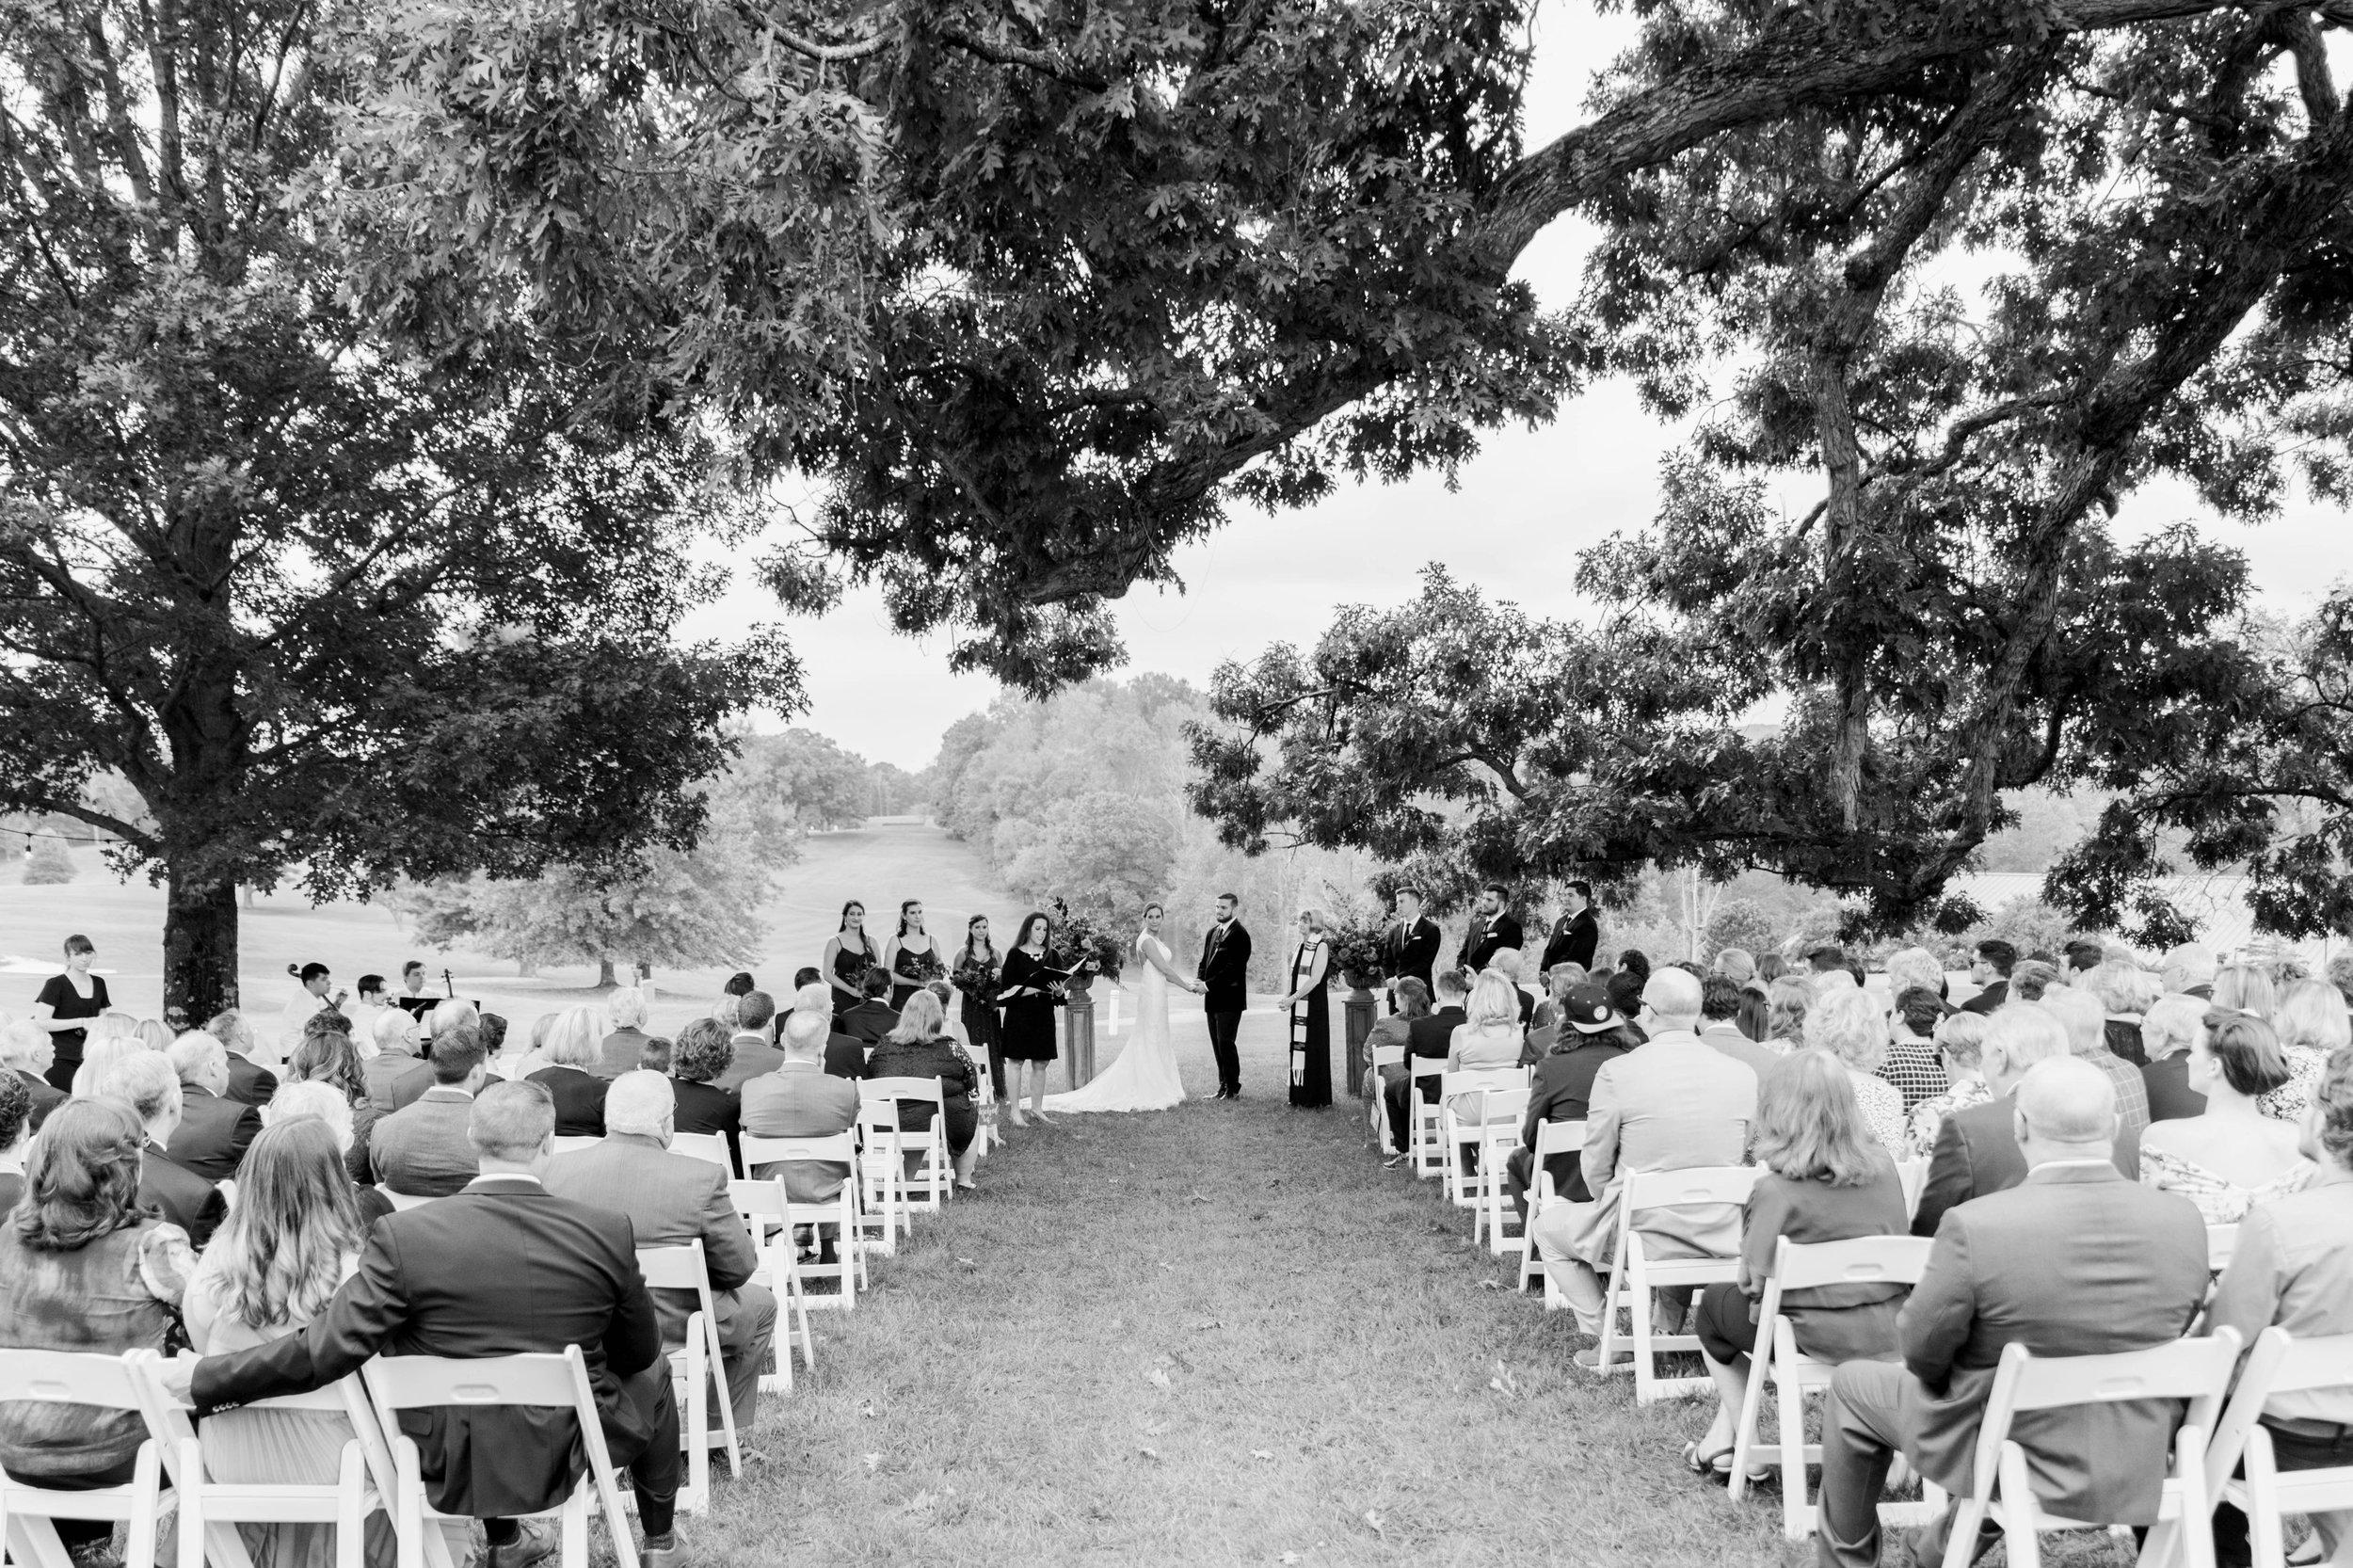 Gordan+Lauren_BoonsboroCountryClubWedding_Virginiaweddingphotographer_LynchburgVi 5.jpg